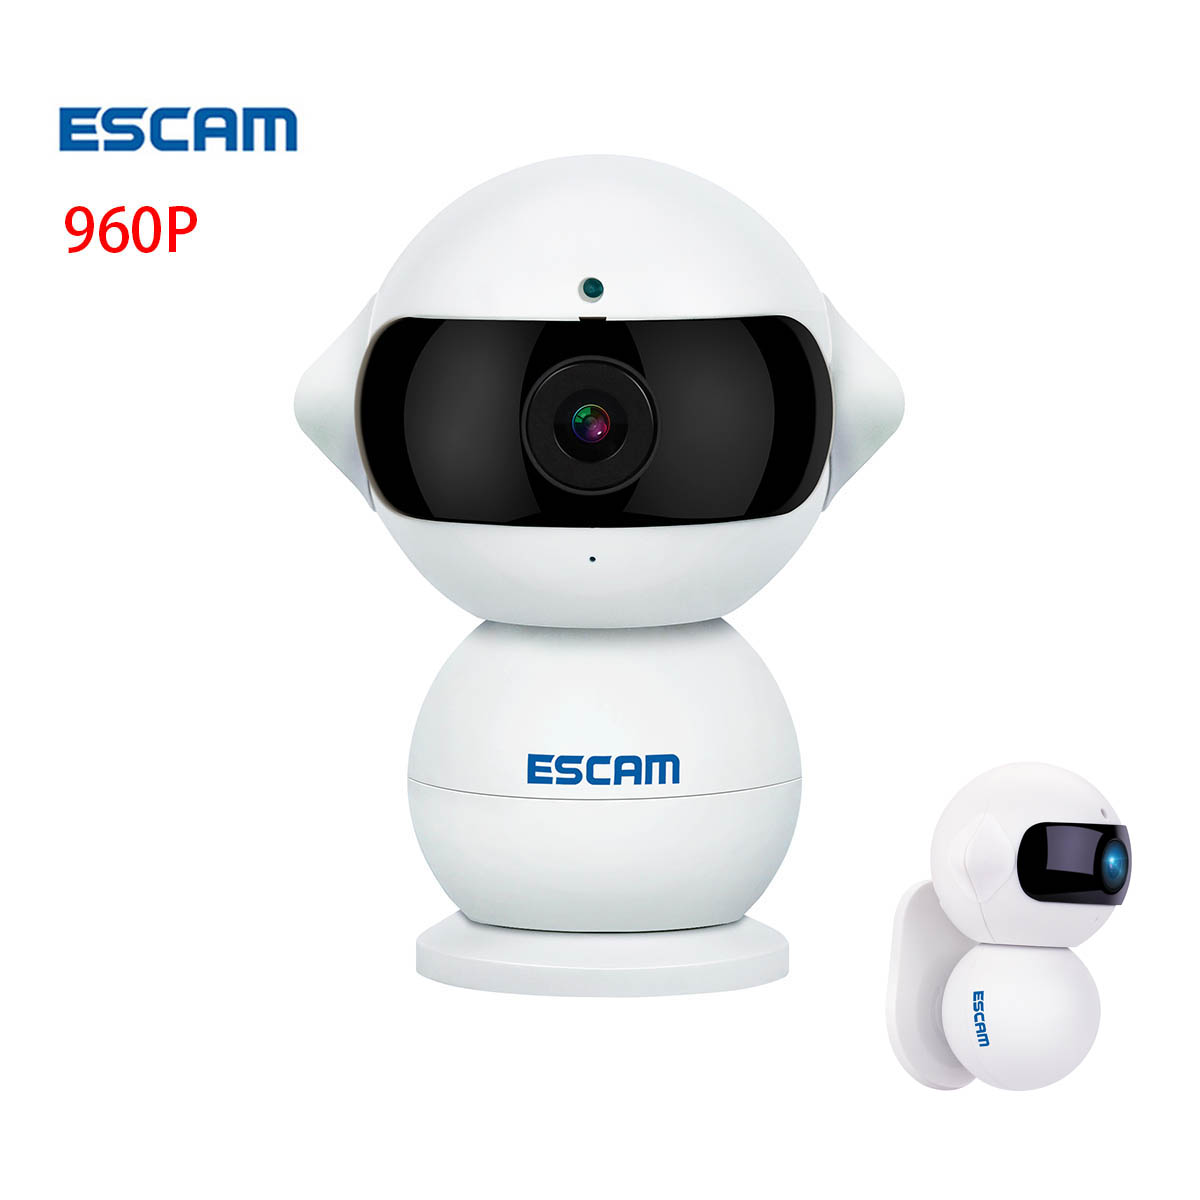 escam qf200 hd 960p ip security camera network wifi cam. Black Bedroom Furniture Sets. Home Design Ideas